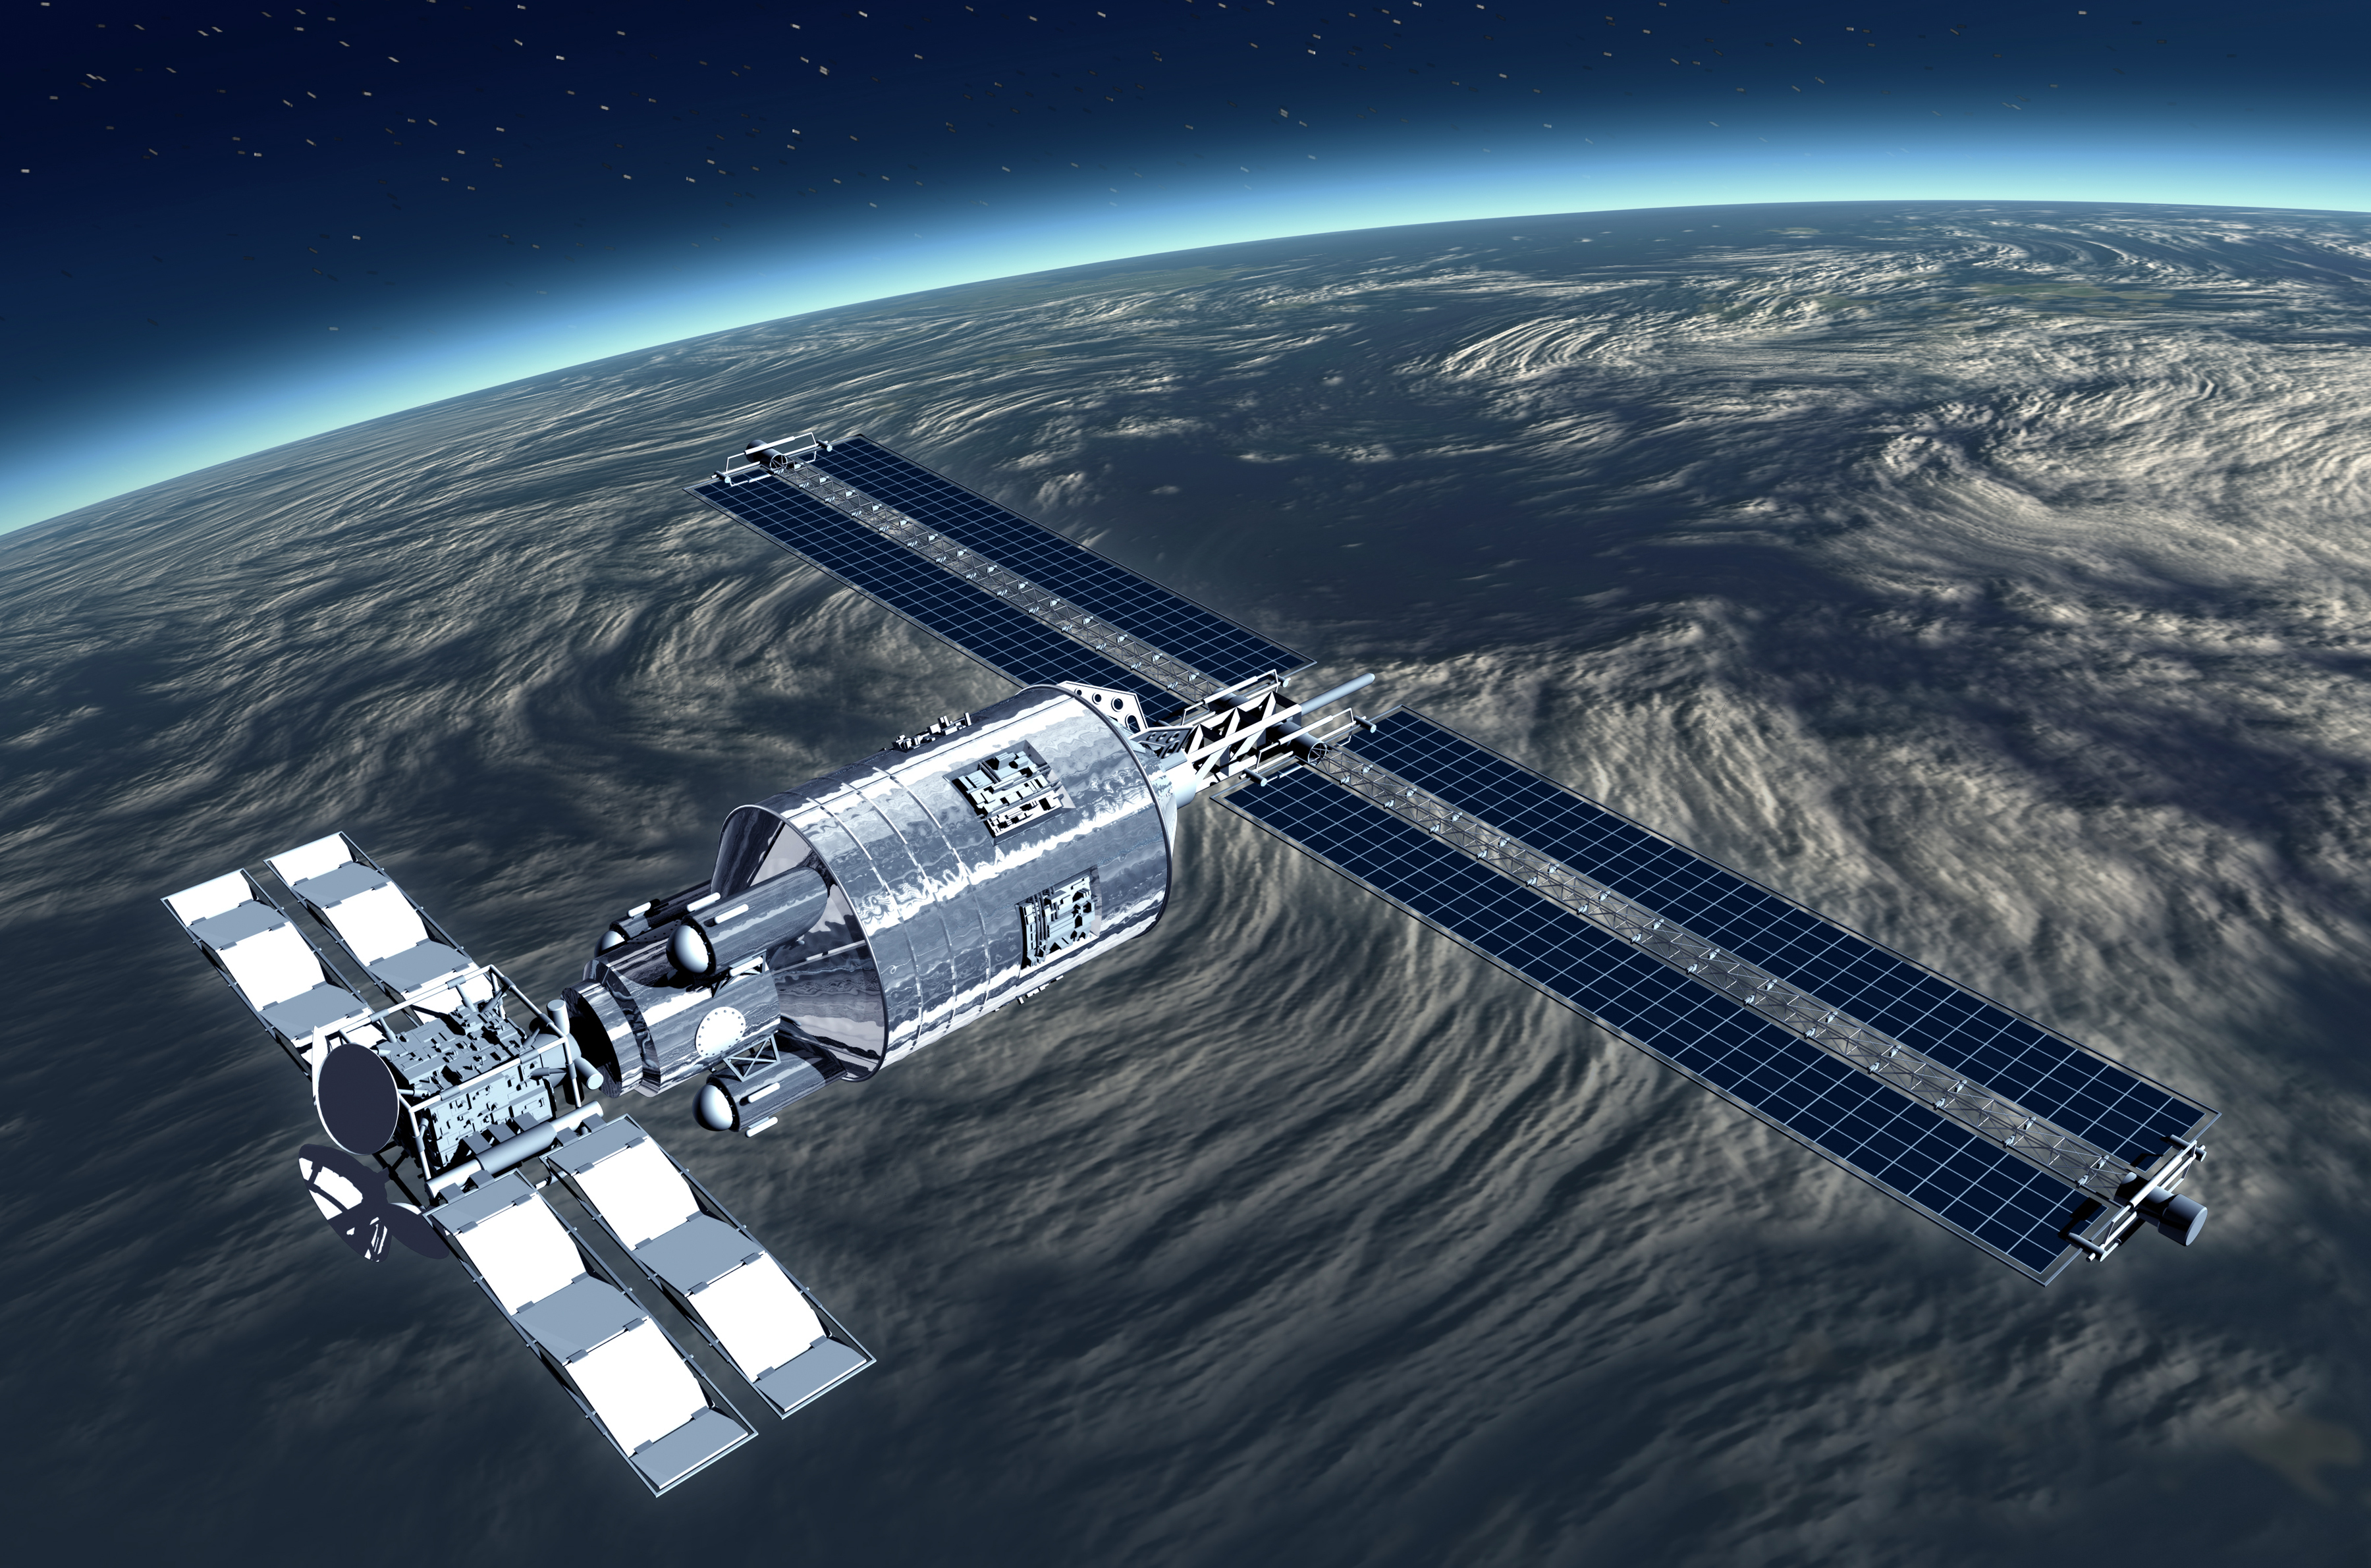 Telecommunication Satellite flying over Earth with reflecting mirror solar panels - Illustration [Shutterstock]